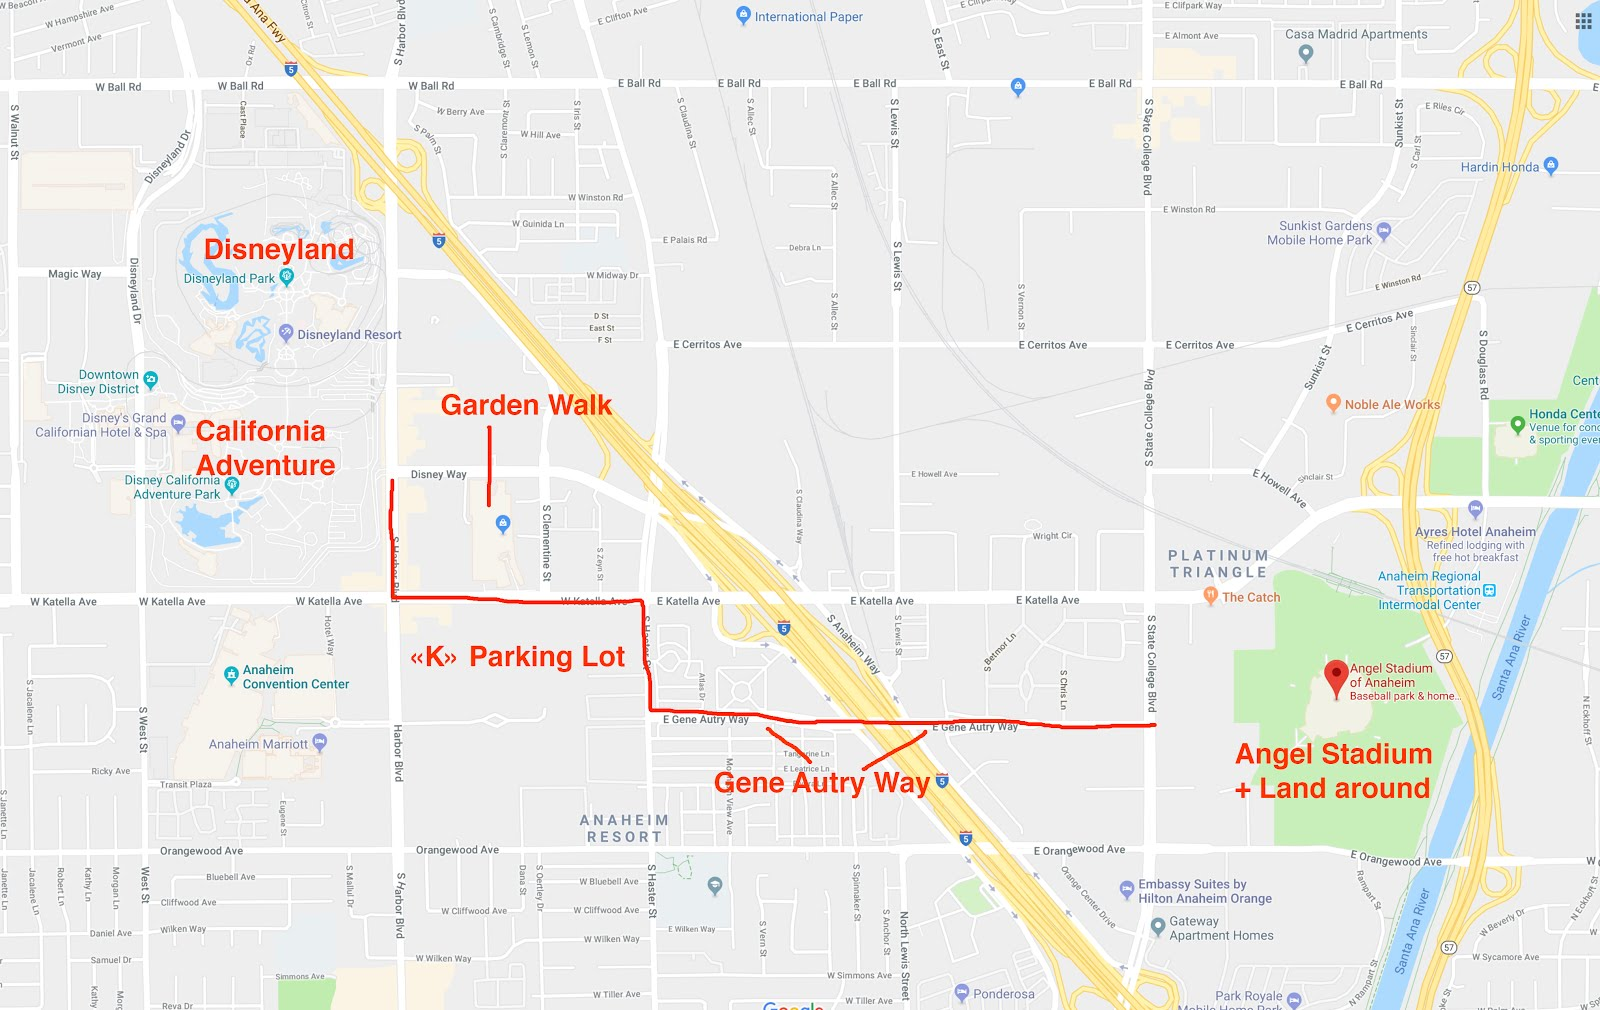 i guess you could say it runs behind toy story lot if angel stadium move all the green area you see on the map will be up for sale